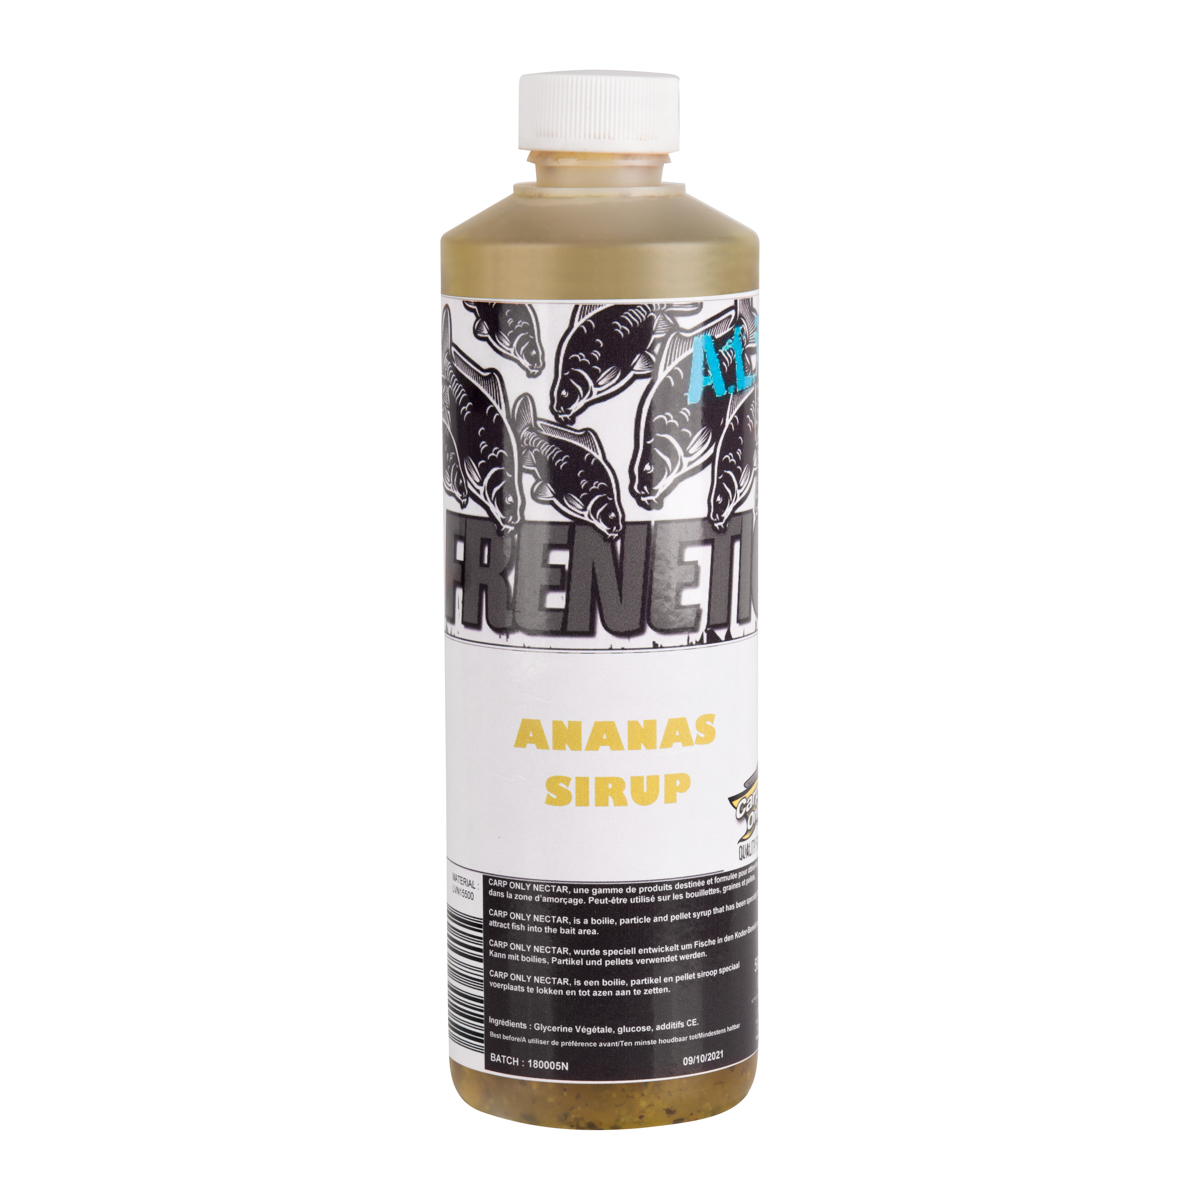 CARP ONLY Sirup Frenetic A.L.T. - Ananas 500ml